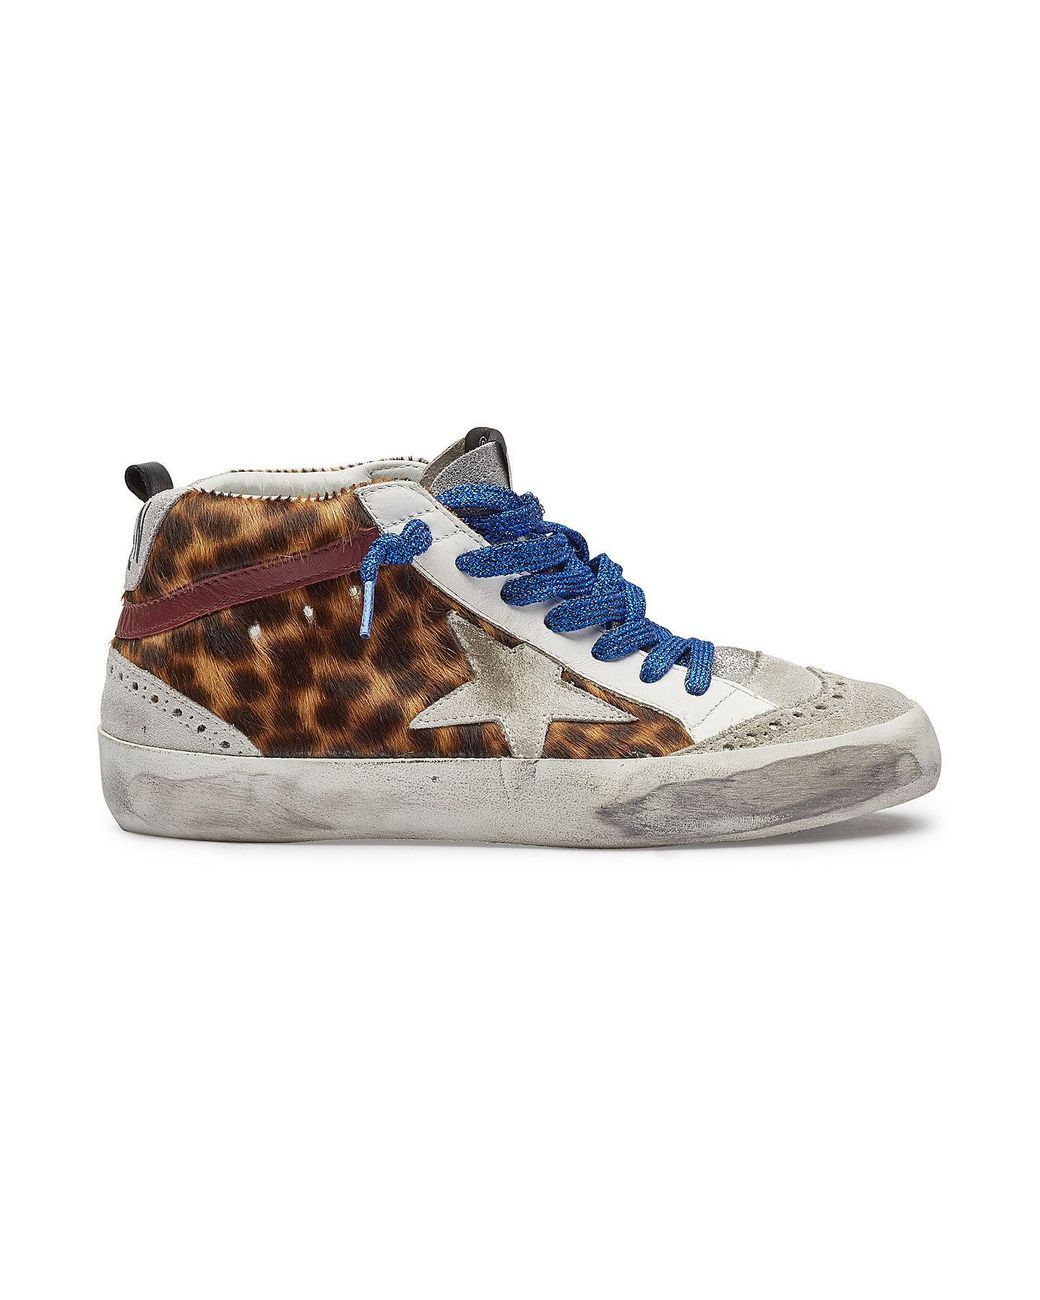 a84062cabad5 golden goose deluxe brand women s blue mid star trainers with leather